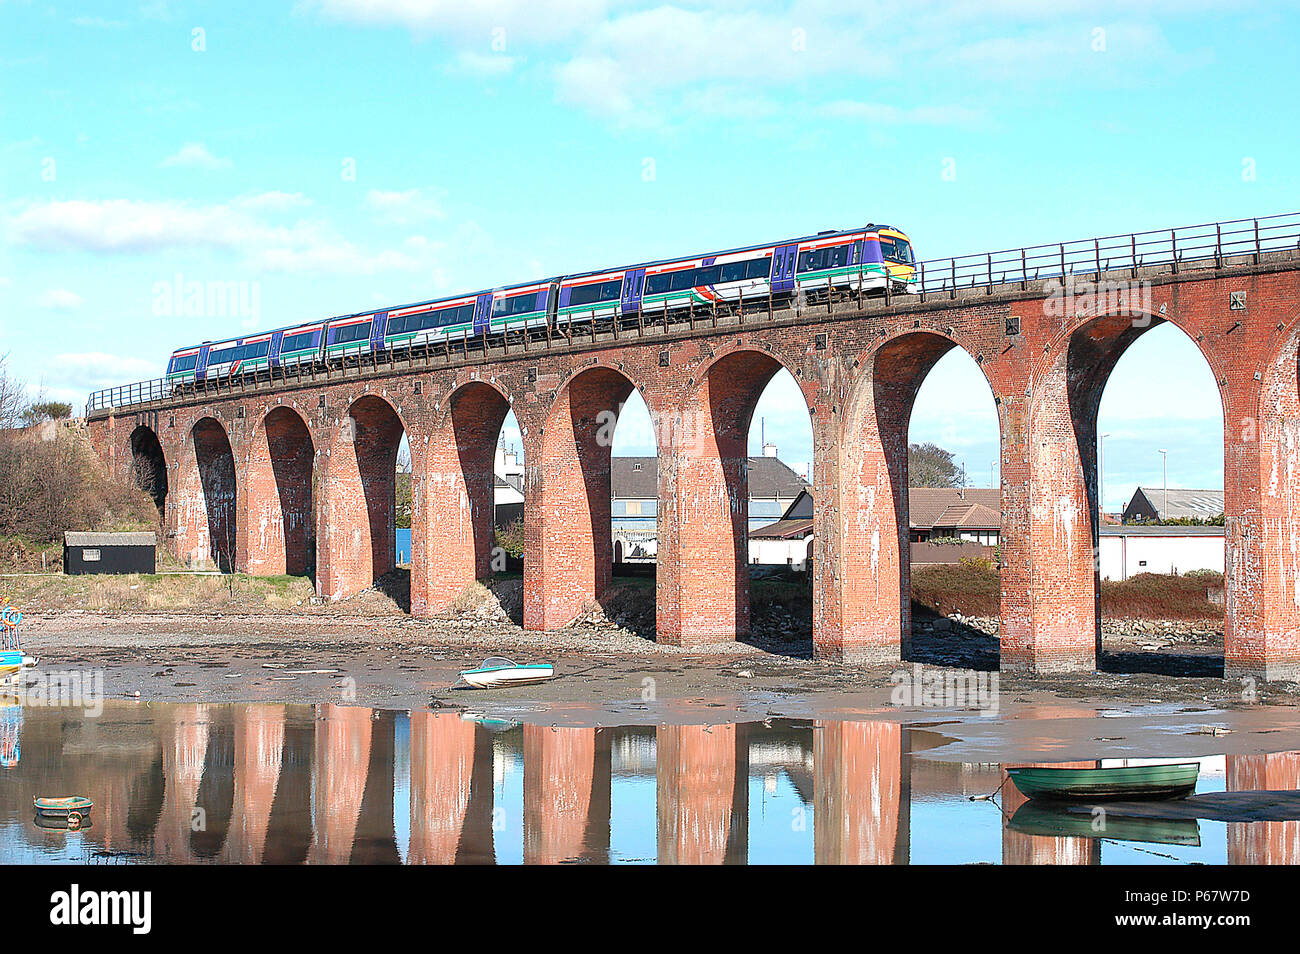 The ECML between Edinburgh and Aberdeen follows the North Sea coastline very closely and sometimes has to cross the bays and inlets such as at Montros - Stock Image